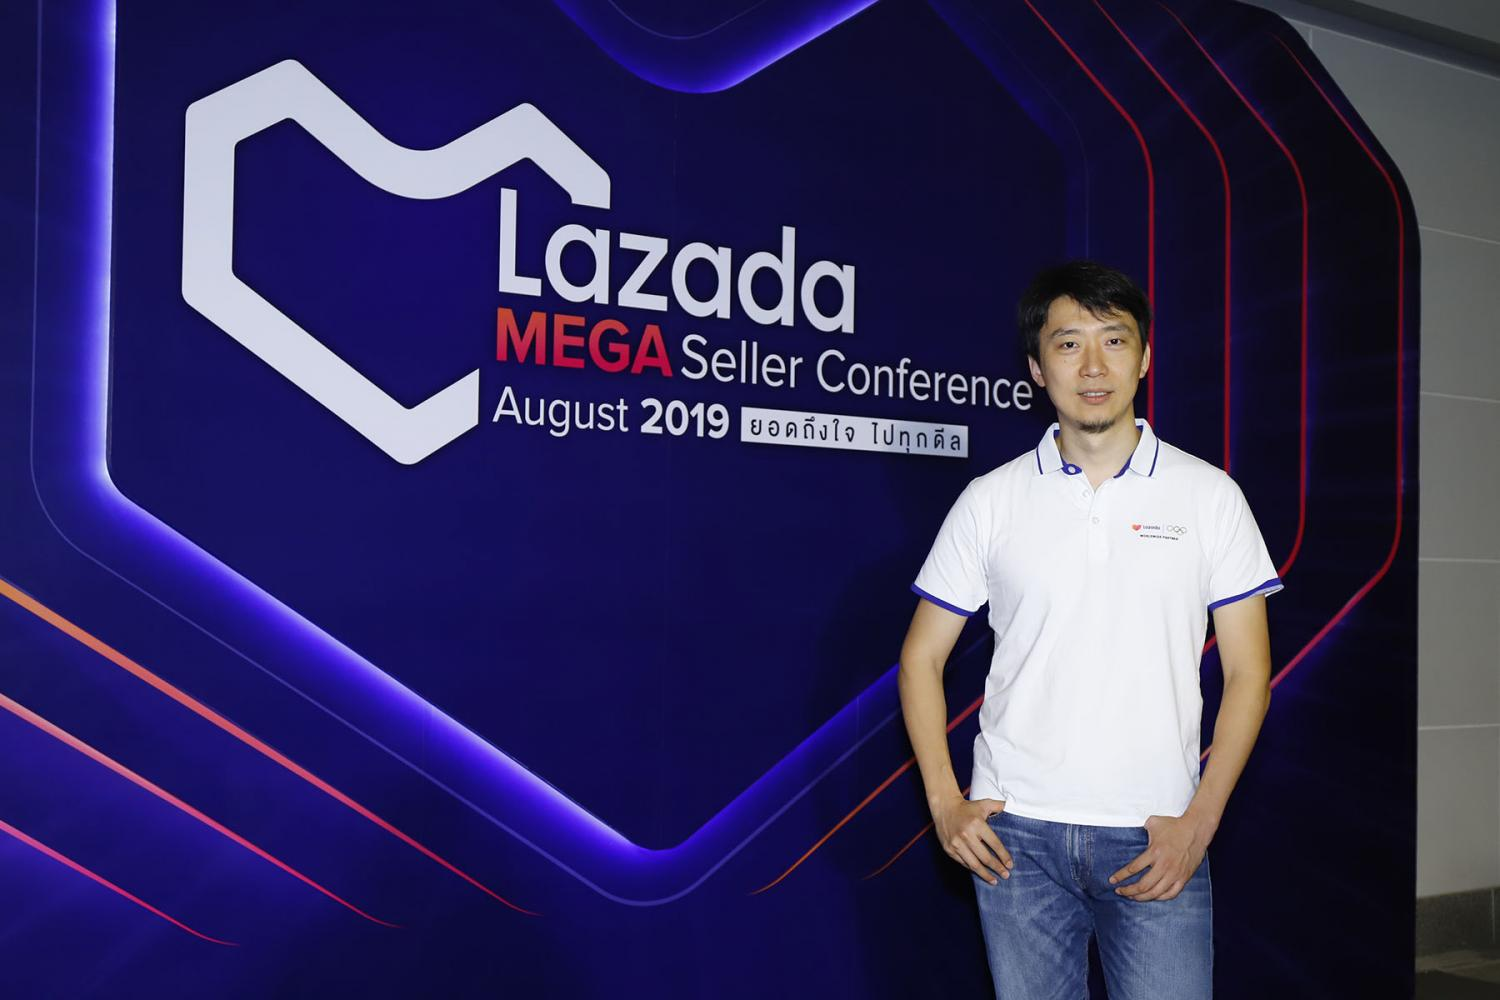 Jack Zhang, deputy CEO of Lazada Thailand, said his company recognises SMEs as the backbone of the Thai economy.